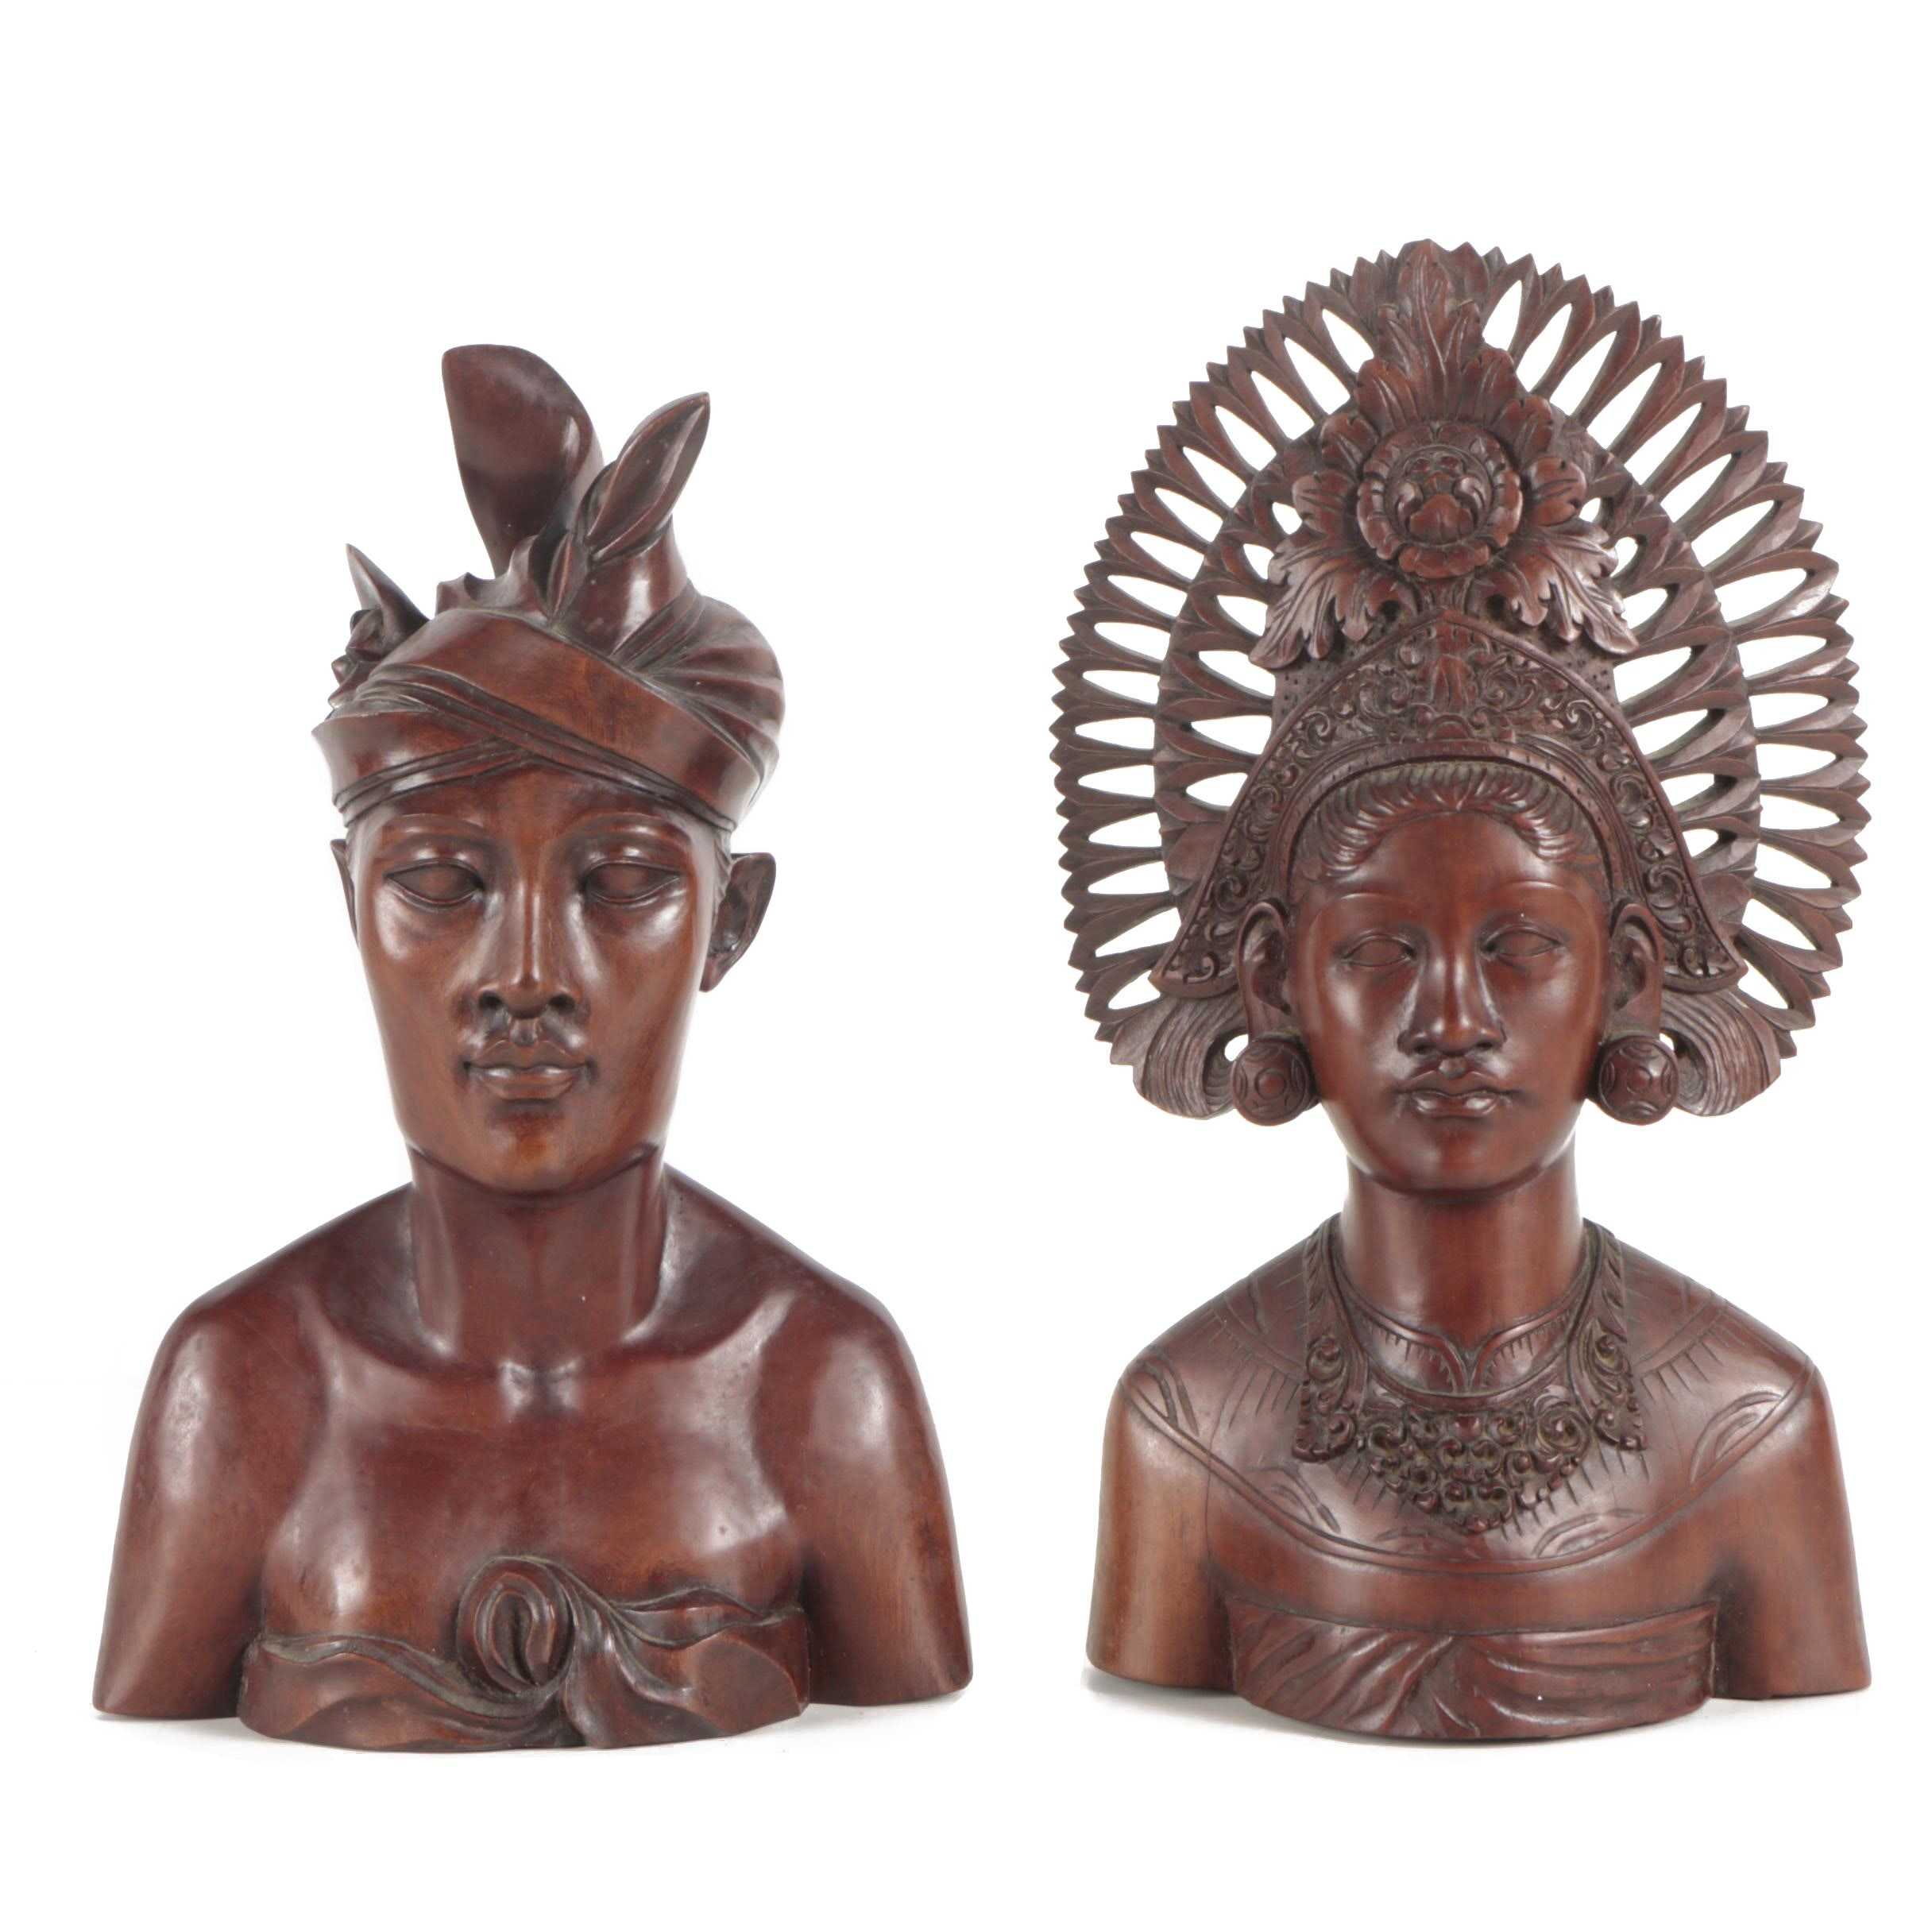 Balinese Hand-Carved Wooden Sculptures Featuring A. Fatimah